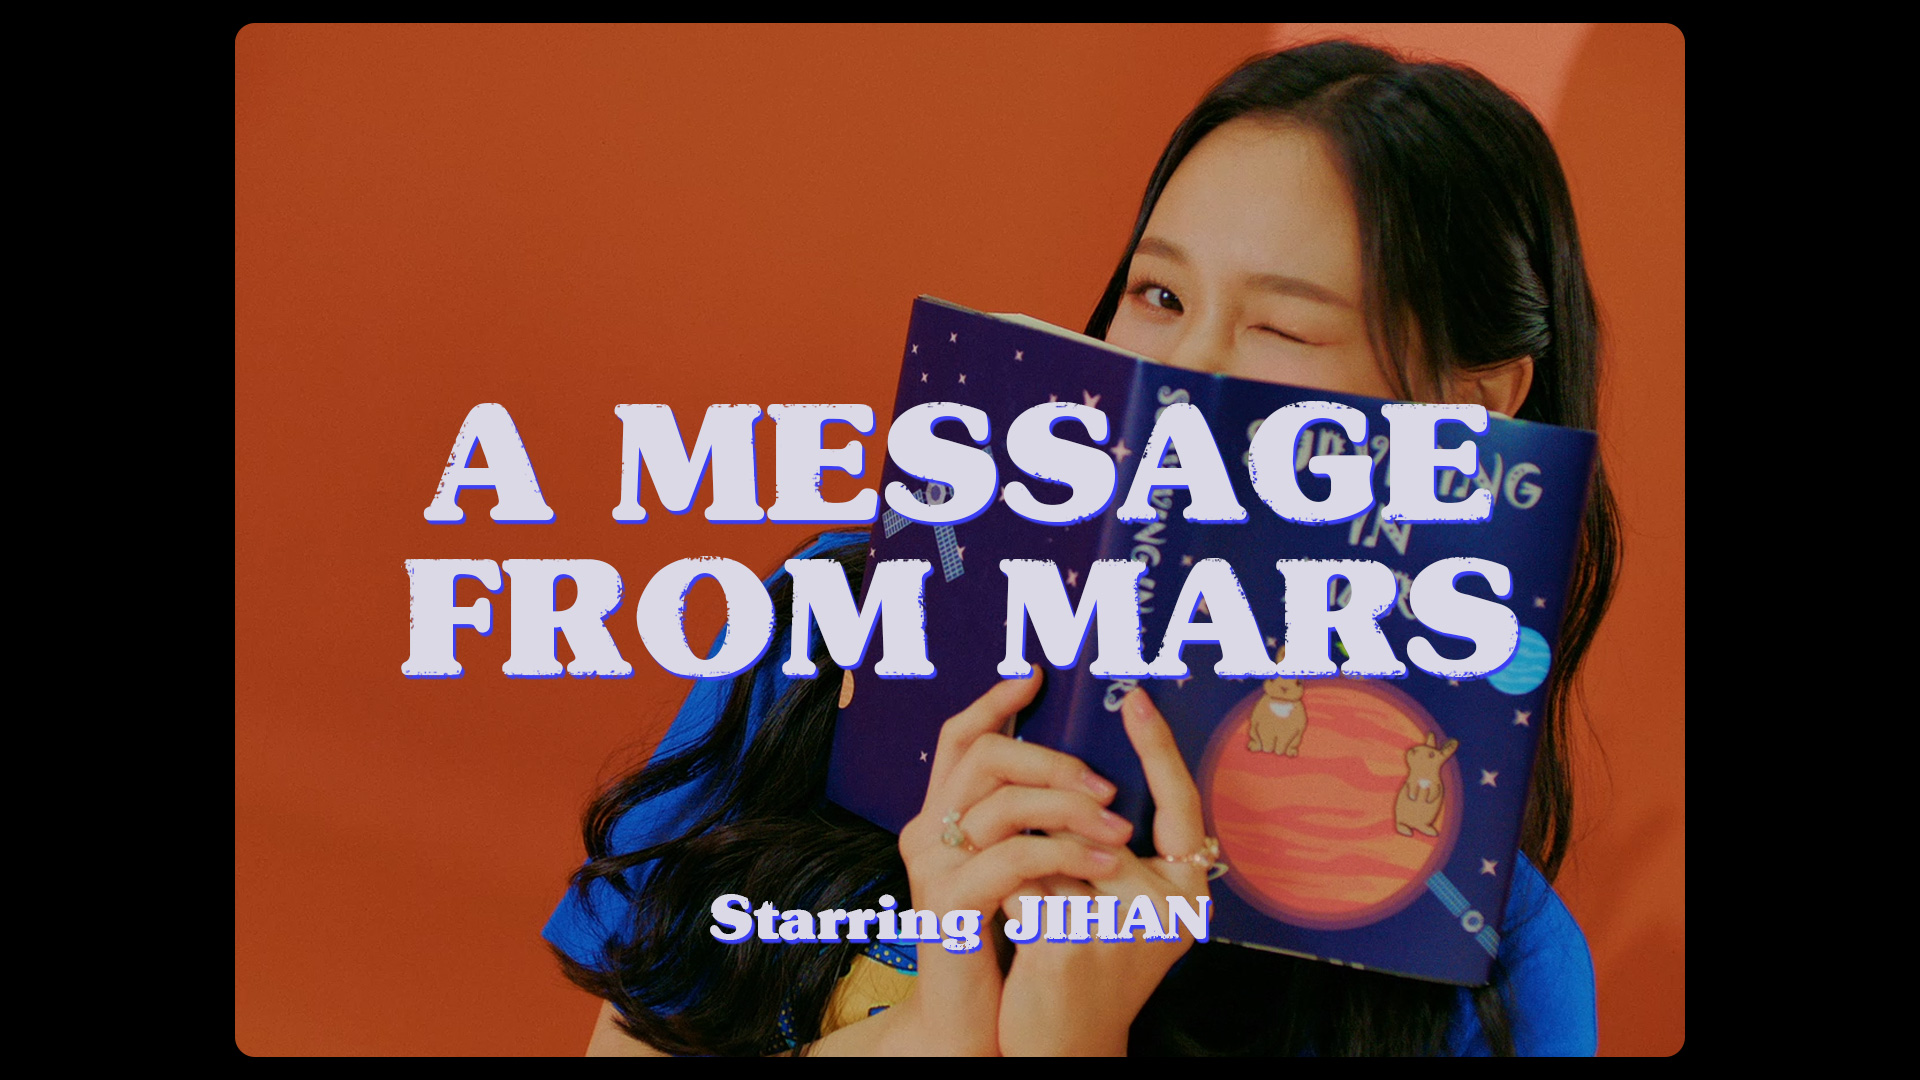 [The Weeekly Story] A MESSAGE FROM MARS : JIHAN